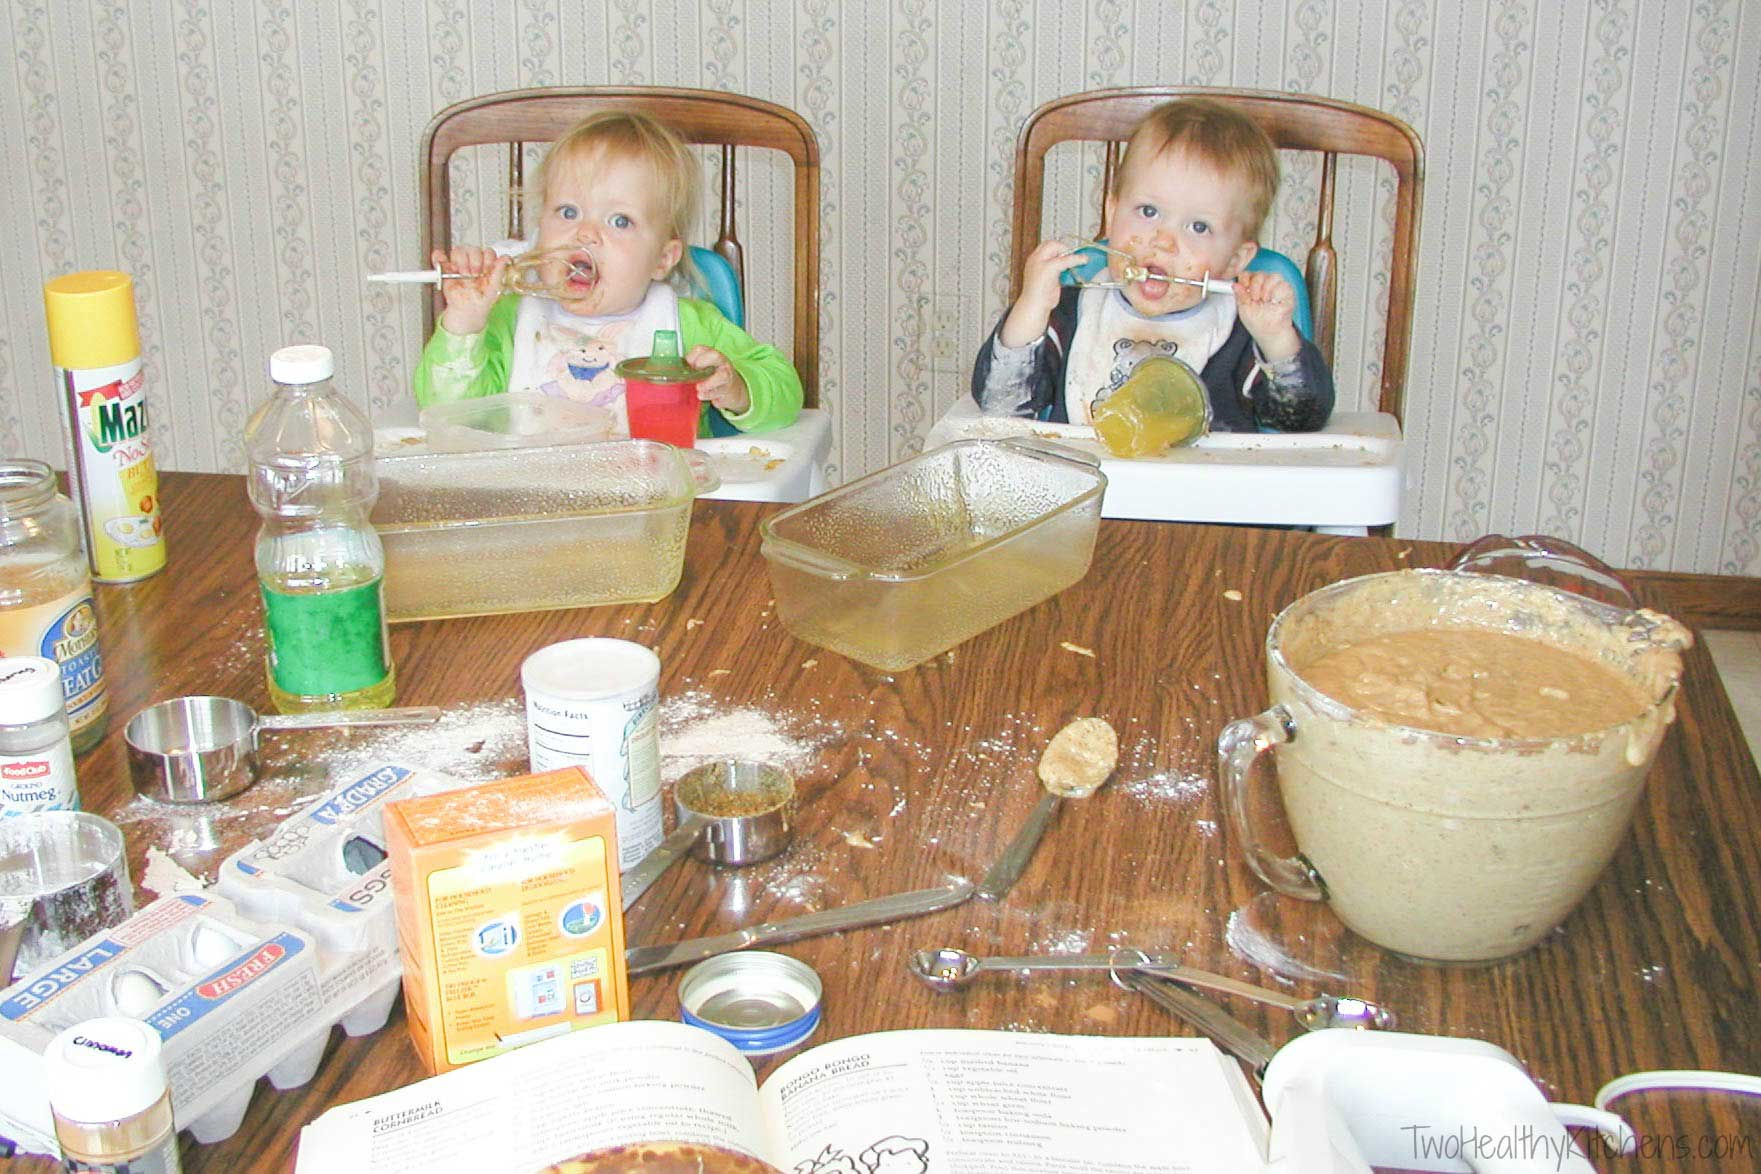 my kids as babies in high chairs, licking beaters and watching as I make a quick bread recipe